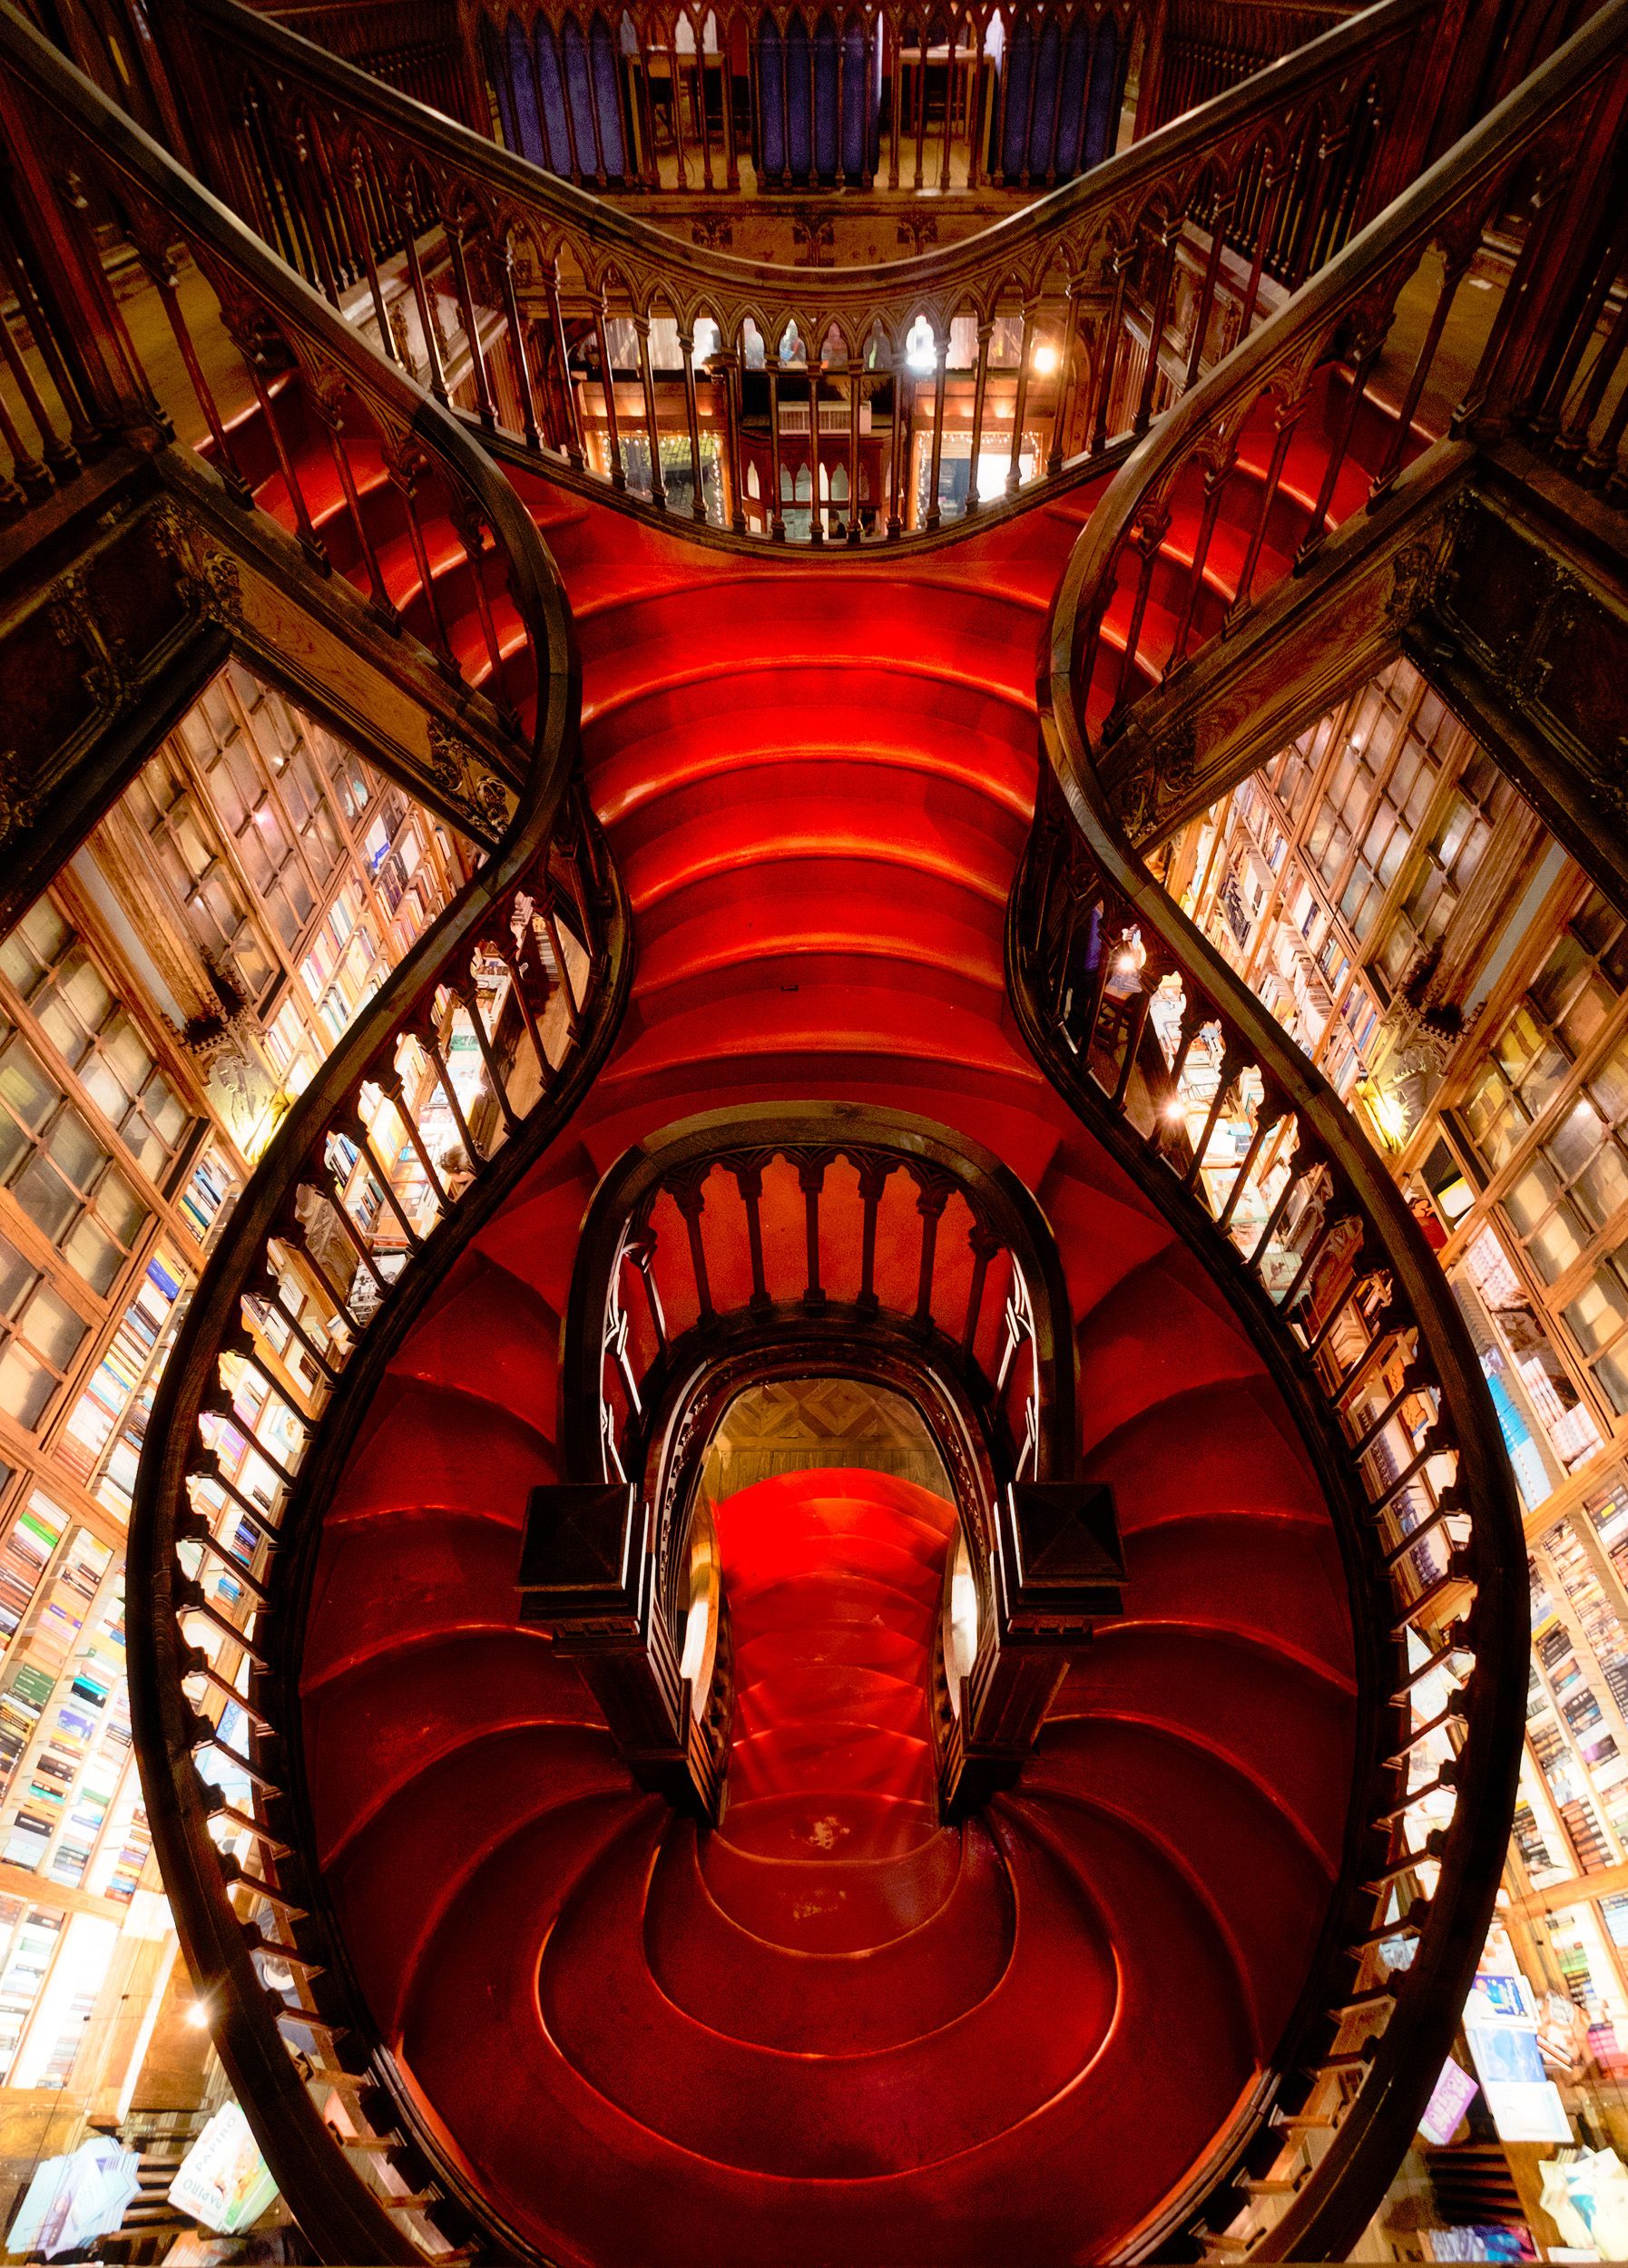 Lello & Irmão   Lello bookshop in Porto was voted one of the most beautiful bookshops in the world. It's a tiny place with beautifully carved ceilings and shelves and this amazingly graceful gothic staircase, which really is a wonder of design and craftsmanship.